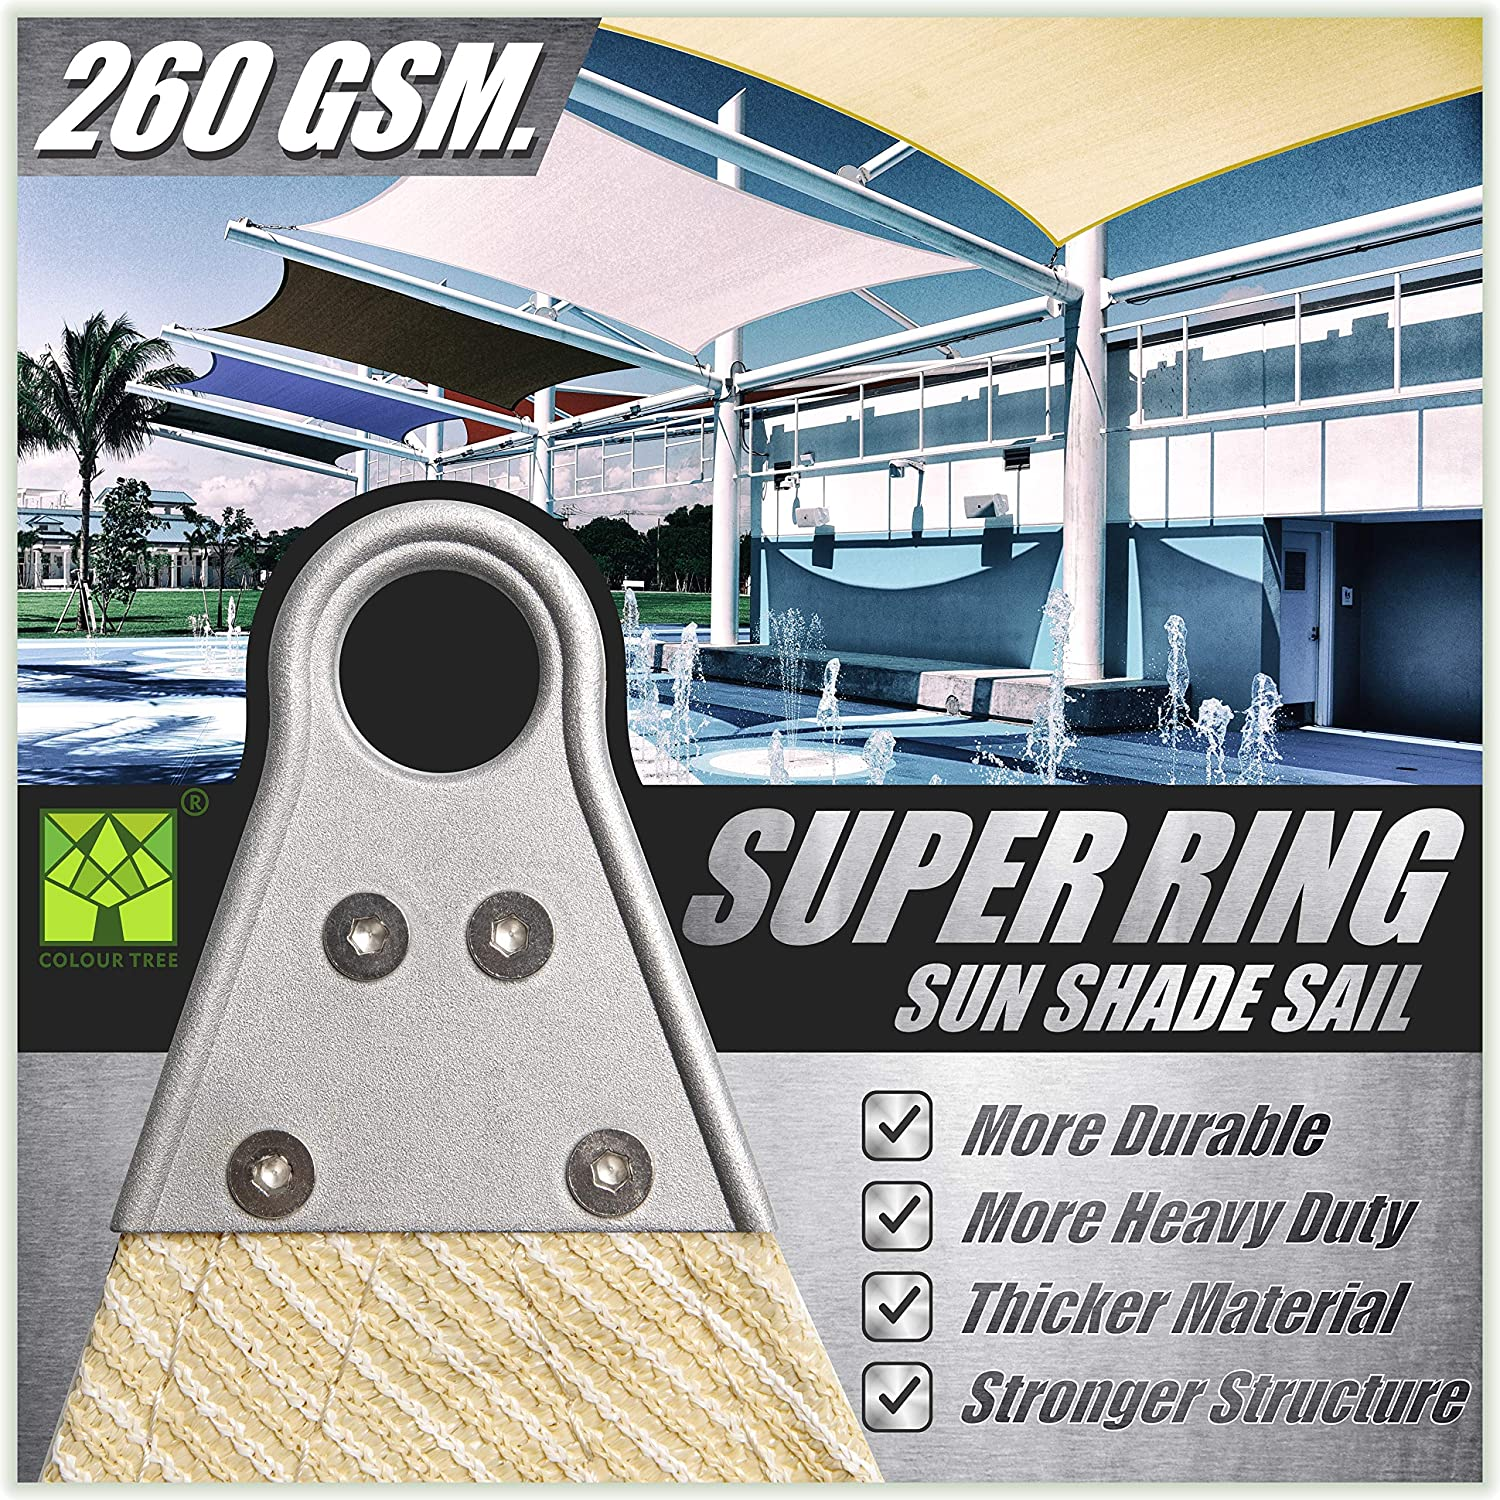 ColourTree 28' x 28' x 28' Beige Triangle Super Ring Sun Shade Sail Canopy Structure, Super Durable Heavy Duty, Reinforced Corners, Edges & 260 GSM Permeable Fabric